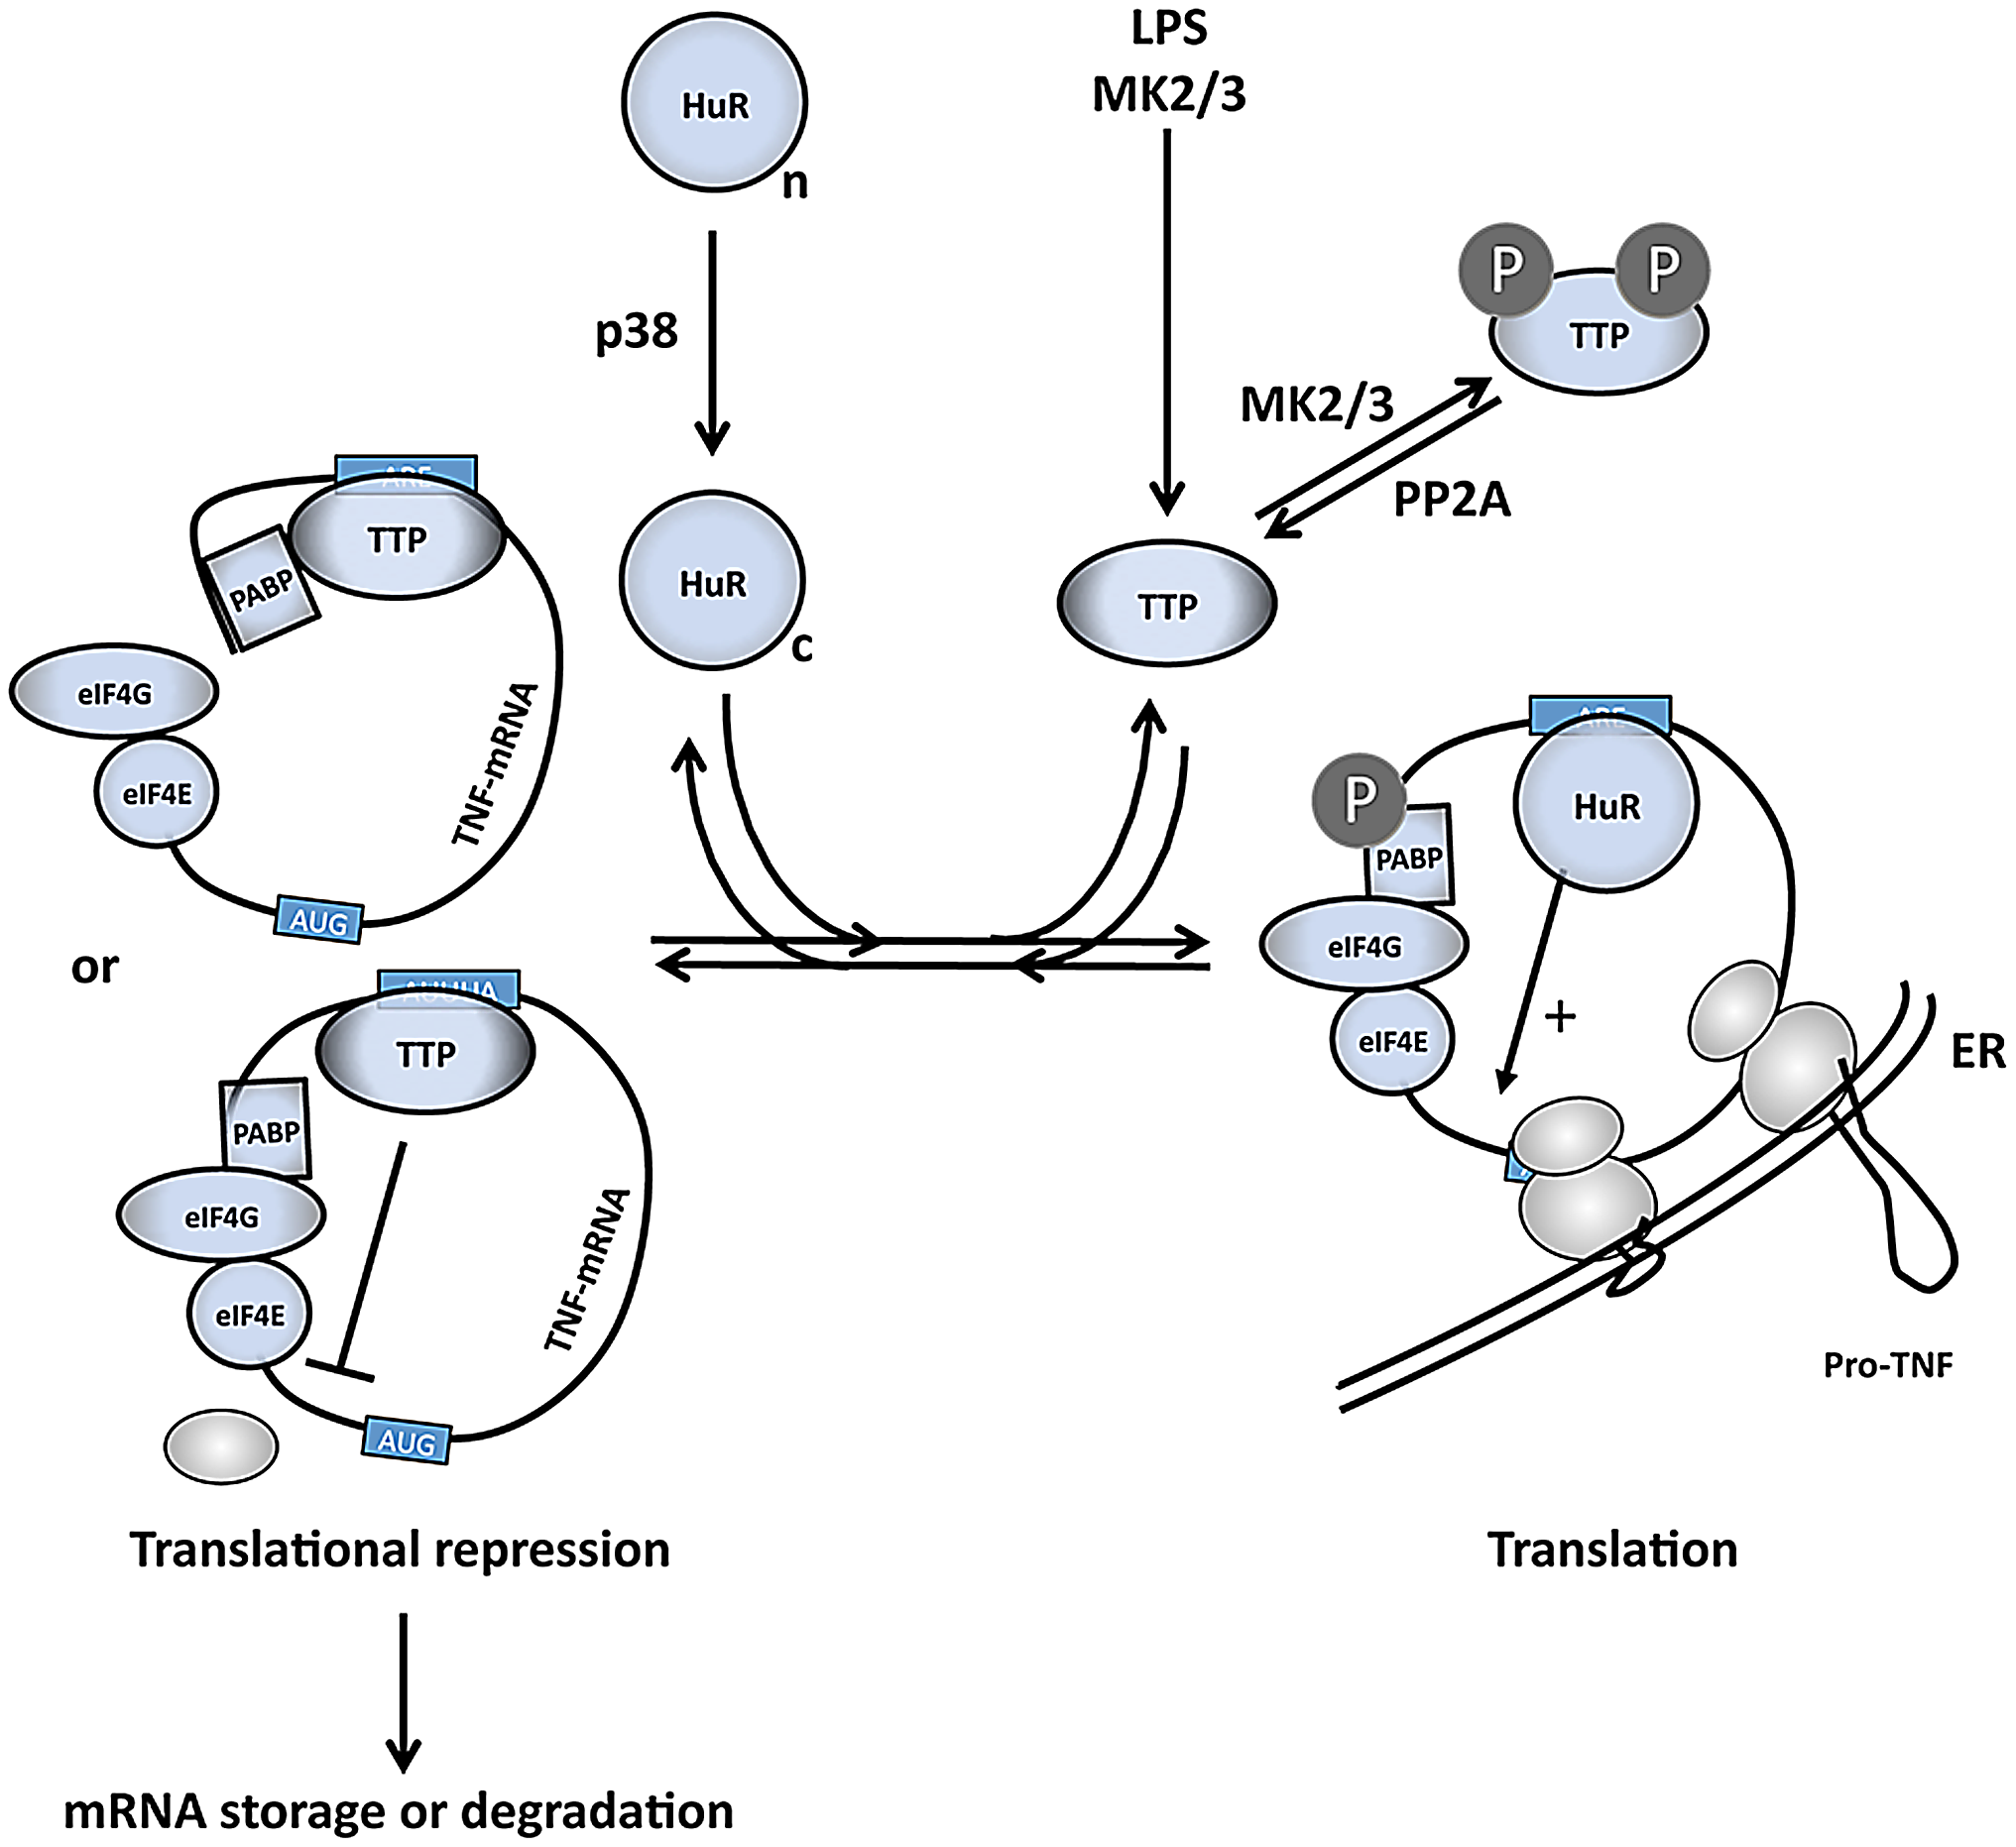 A comprehensive model of the regulation of TNF mRNA and TNF release by p38 and MK2/3.